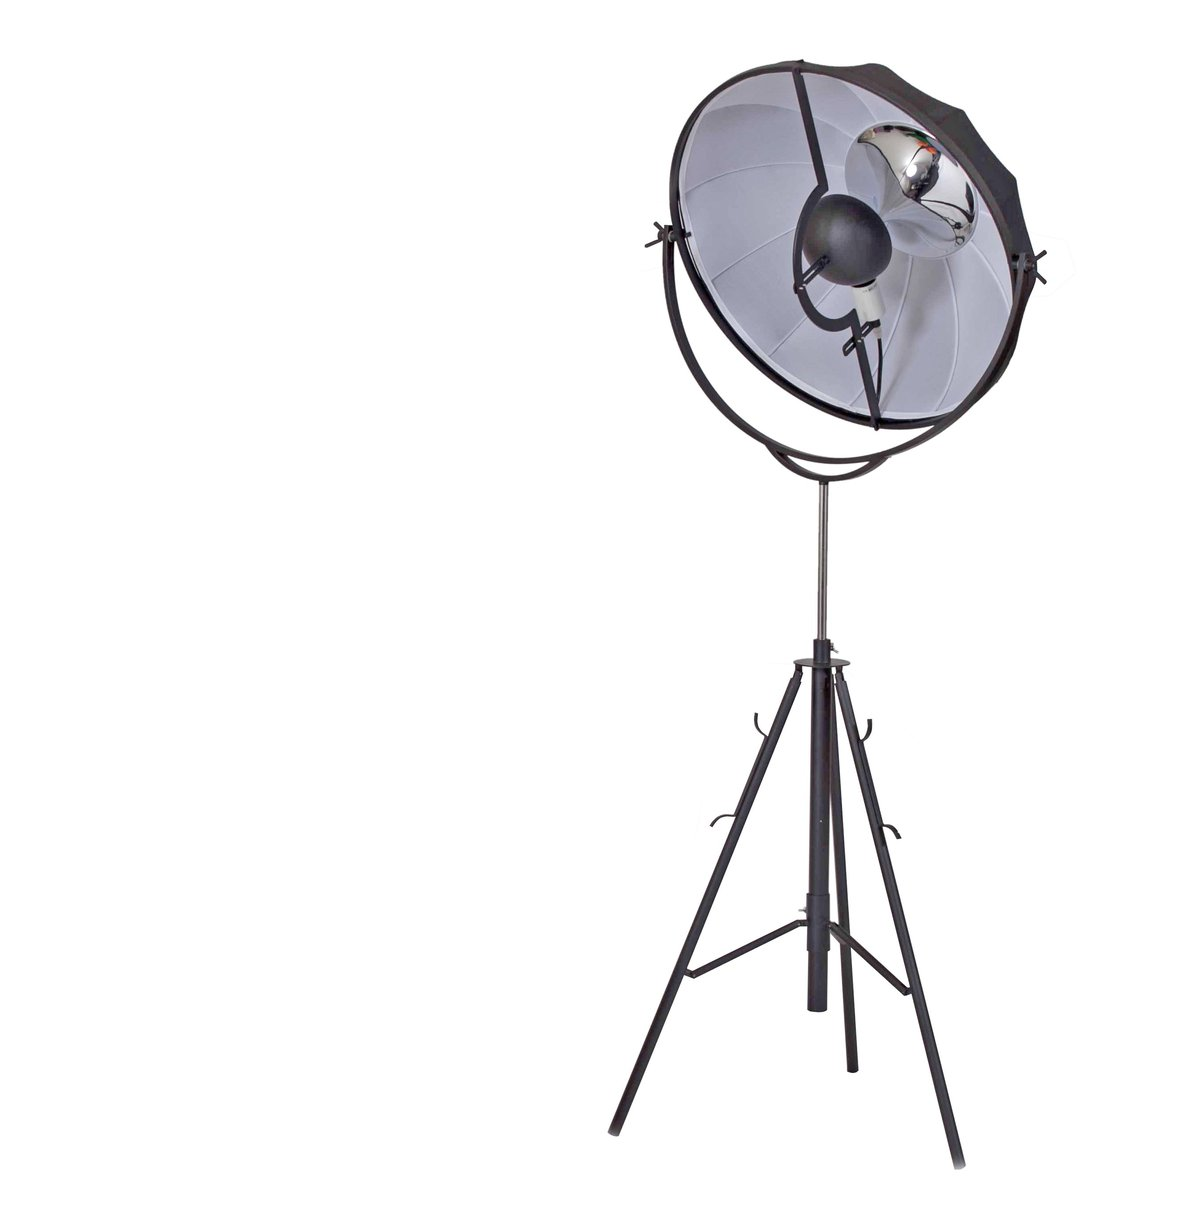 BM191460 - Adjustable Metal Floor Lamp With Fabric Shade And Tripod Feet, Large, Black